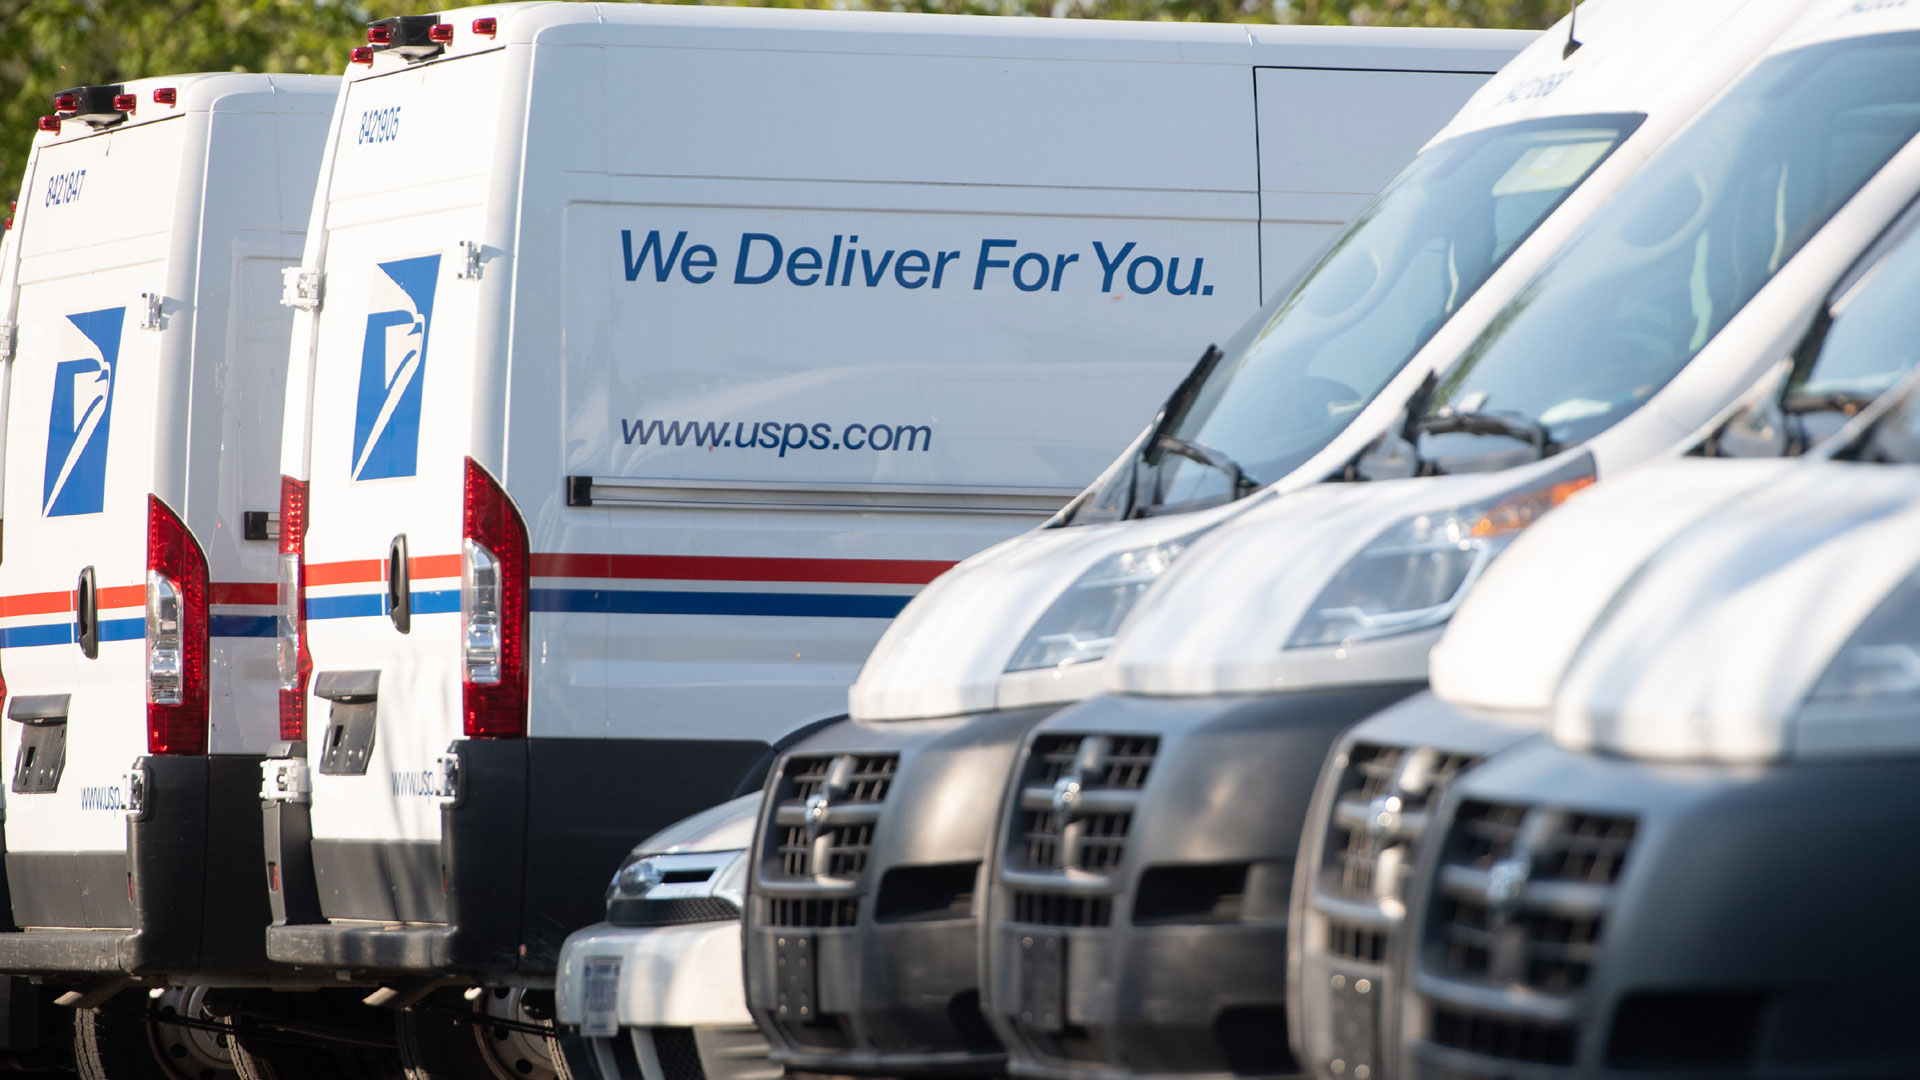 Postal trucks are parked at a U.S. Postal Service post office location in this undated file photo. (Saul Loeb /AFP / Getty Images)